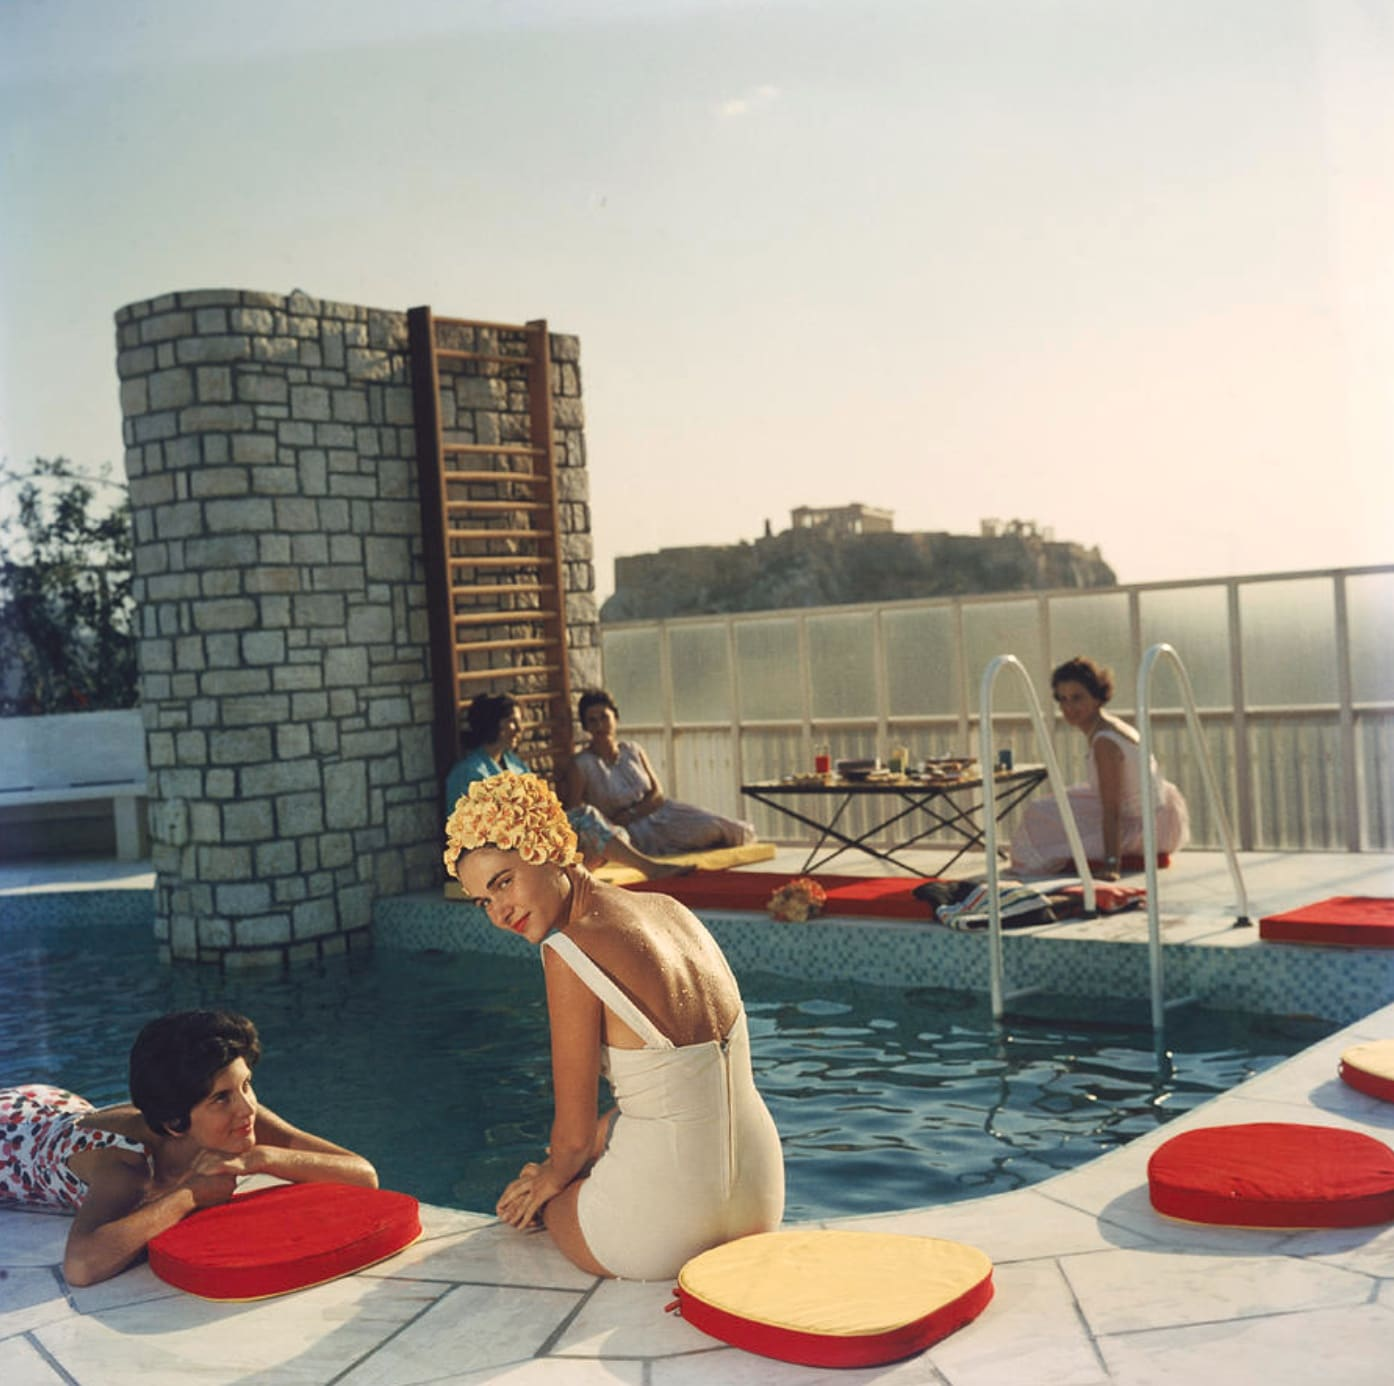 Slim Aarons, penthouse Pool, Athens, 1961